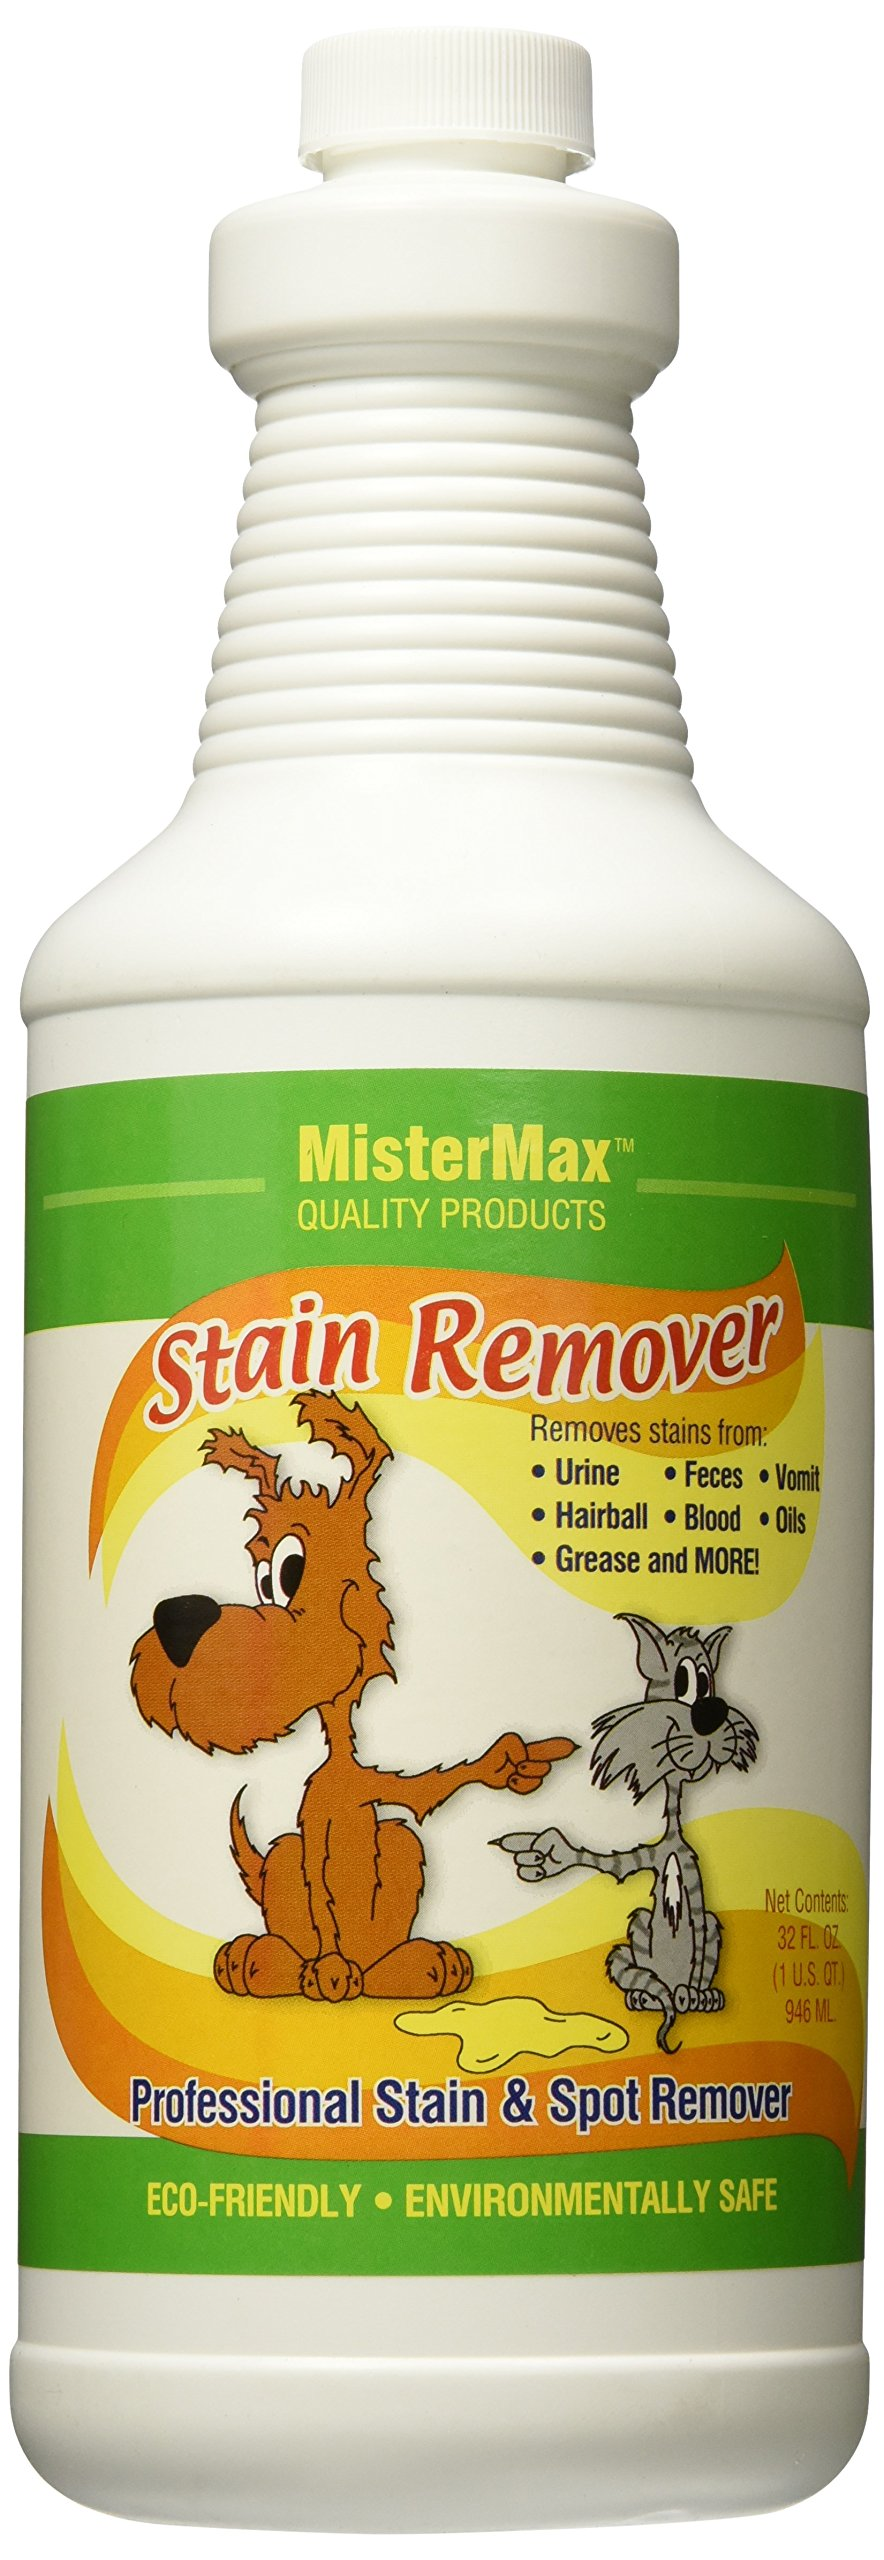 Mister Max Stain Remover by Mister Max